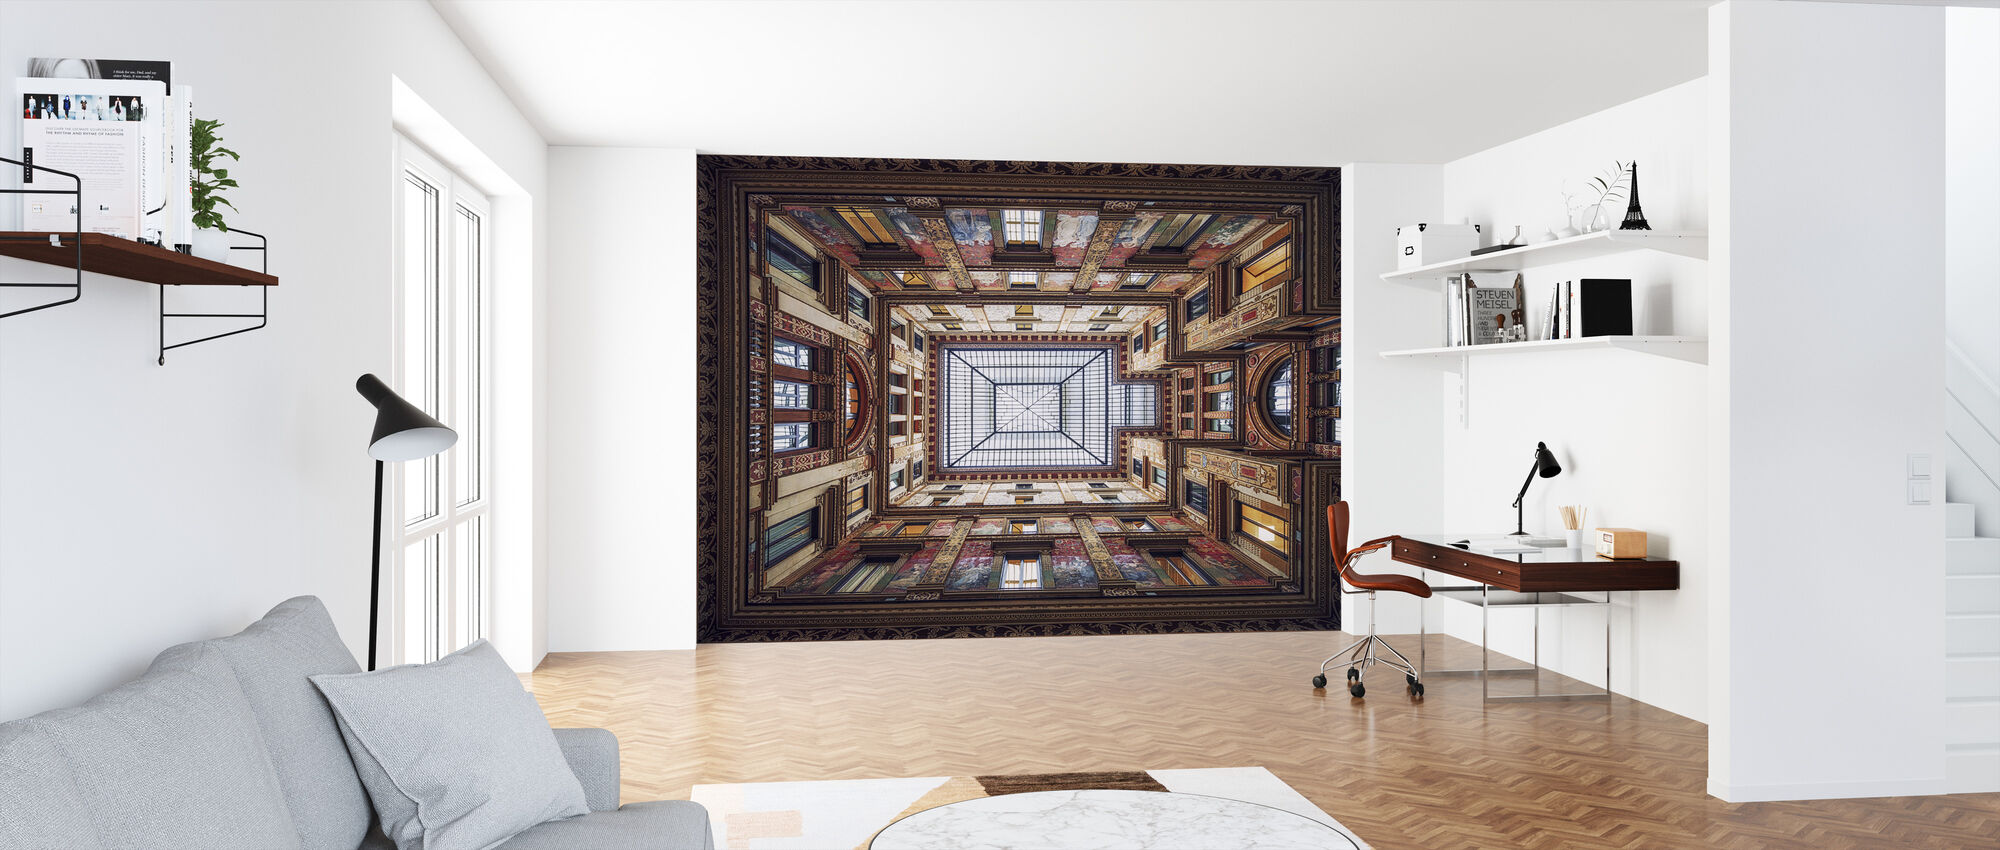 Galleria Sciarra, Rome - Wallpaper - Office